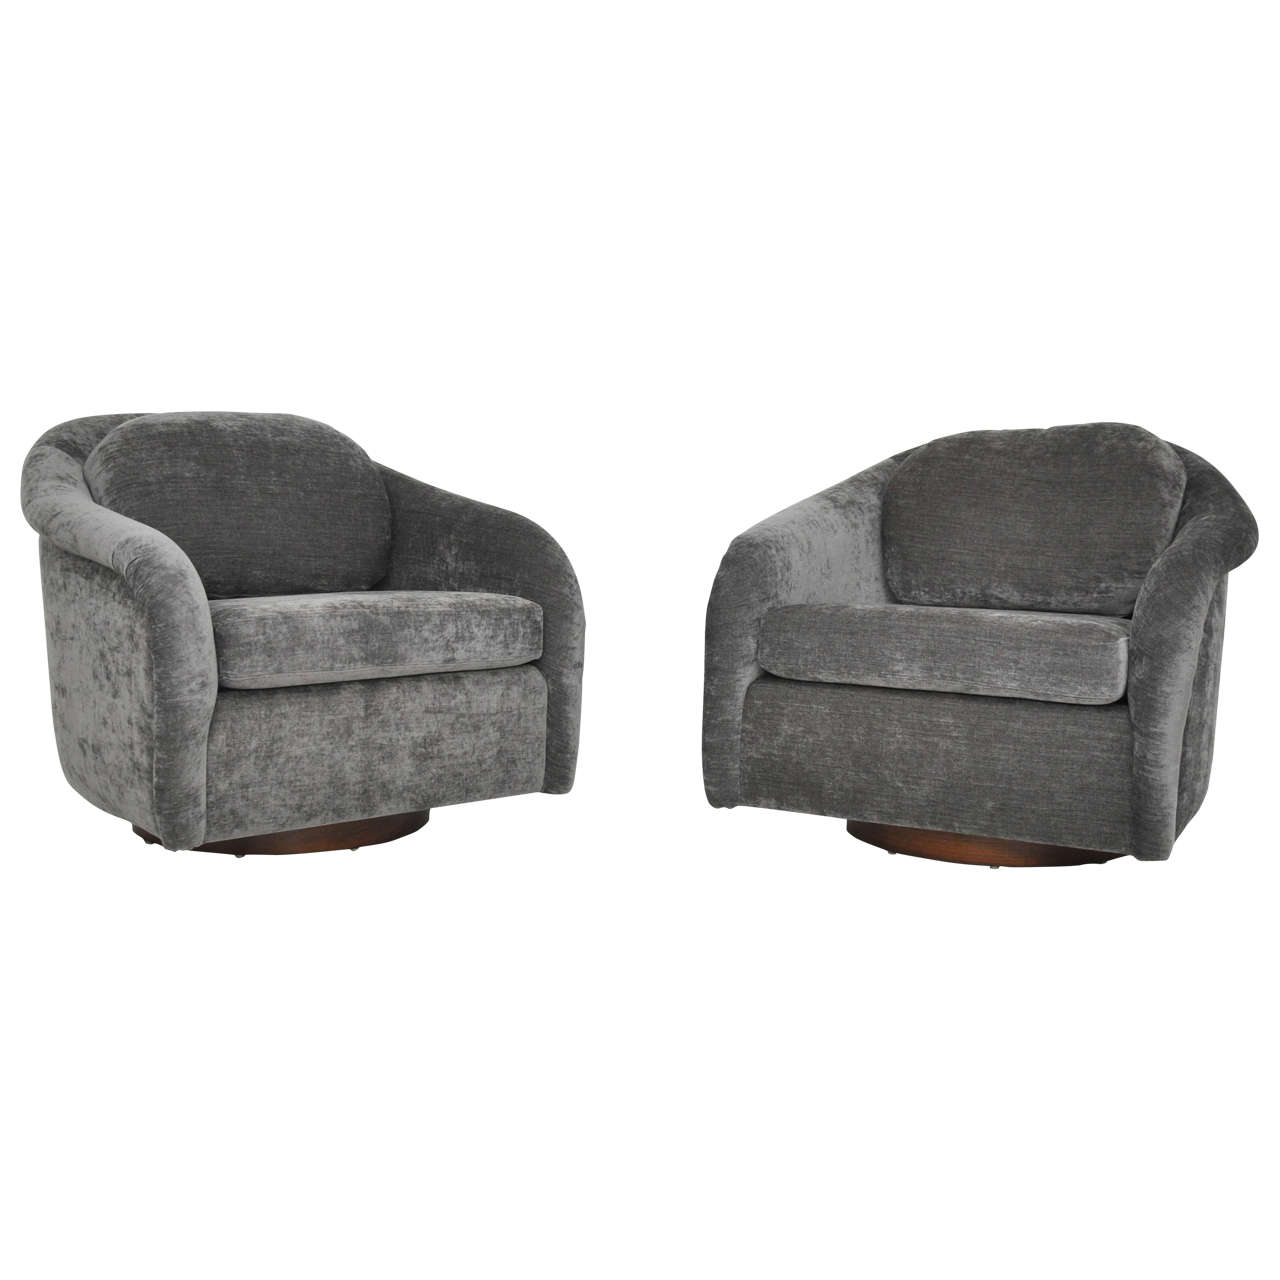 swivel chair large office mesh back support milo baughman chairs circa 1970s at 1stdibs